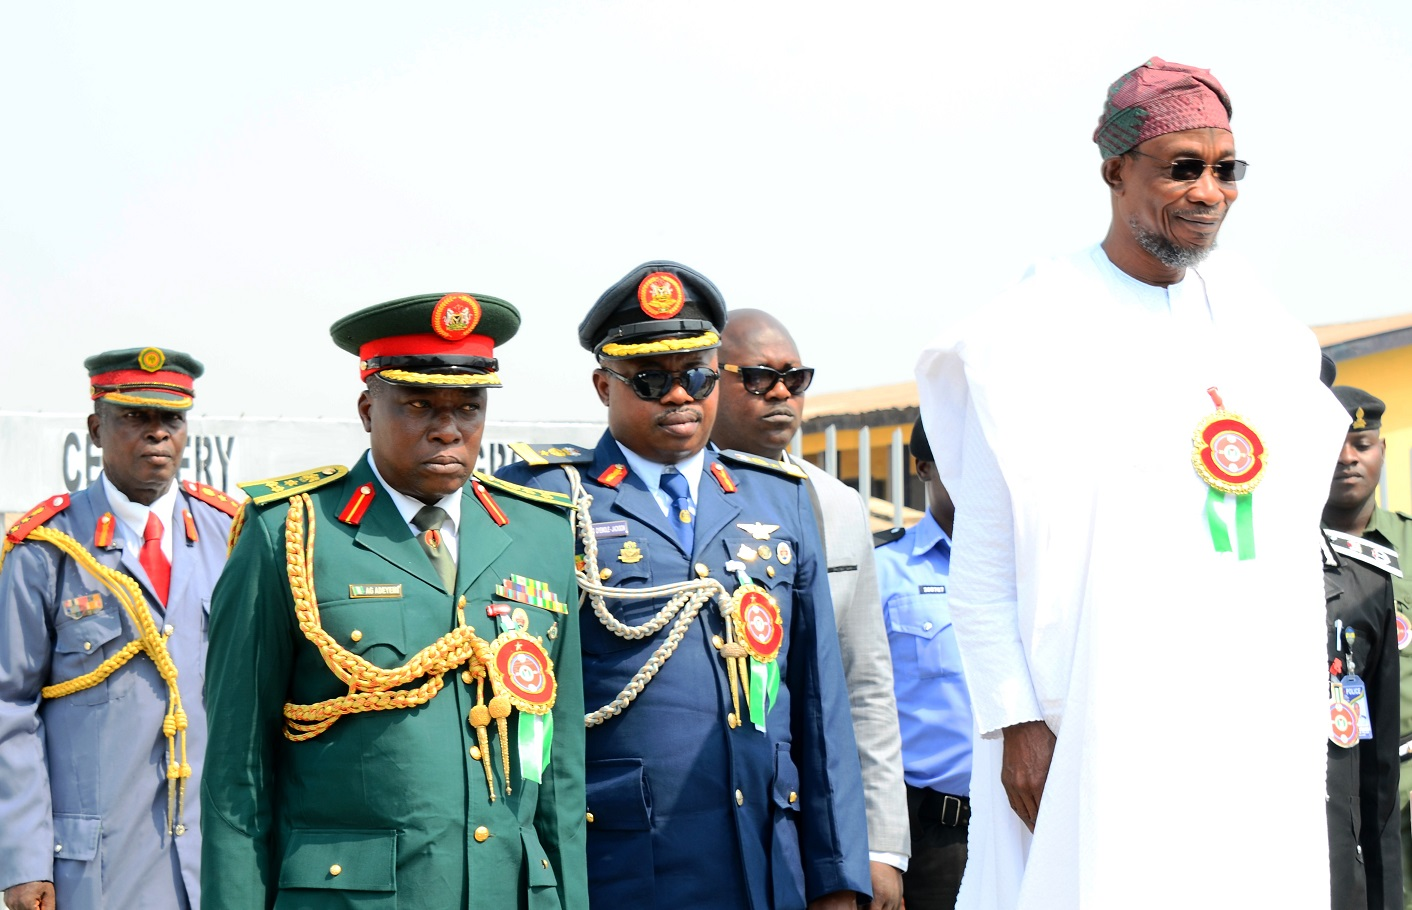 From right, Governor State of Osun, Ogbeni Rauf Aregbesola; Commandant, Nigerian Air Force Institute of Safety, Ipetu-Ijesa, Air Commodore Oyewole Jackson; Commander, Engineer Construction Company, (ECC) Ede, Brigadier General Gbenga Adeyemi and Chairman Nigerian Legion, State of Osun, Colonel Alimi Samotu, during 2015 Armed forces Remembrance Day Celebration in Osogbo, State of Osun on Thursday 15-01-2015